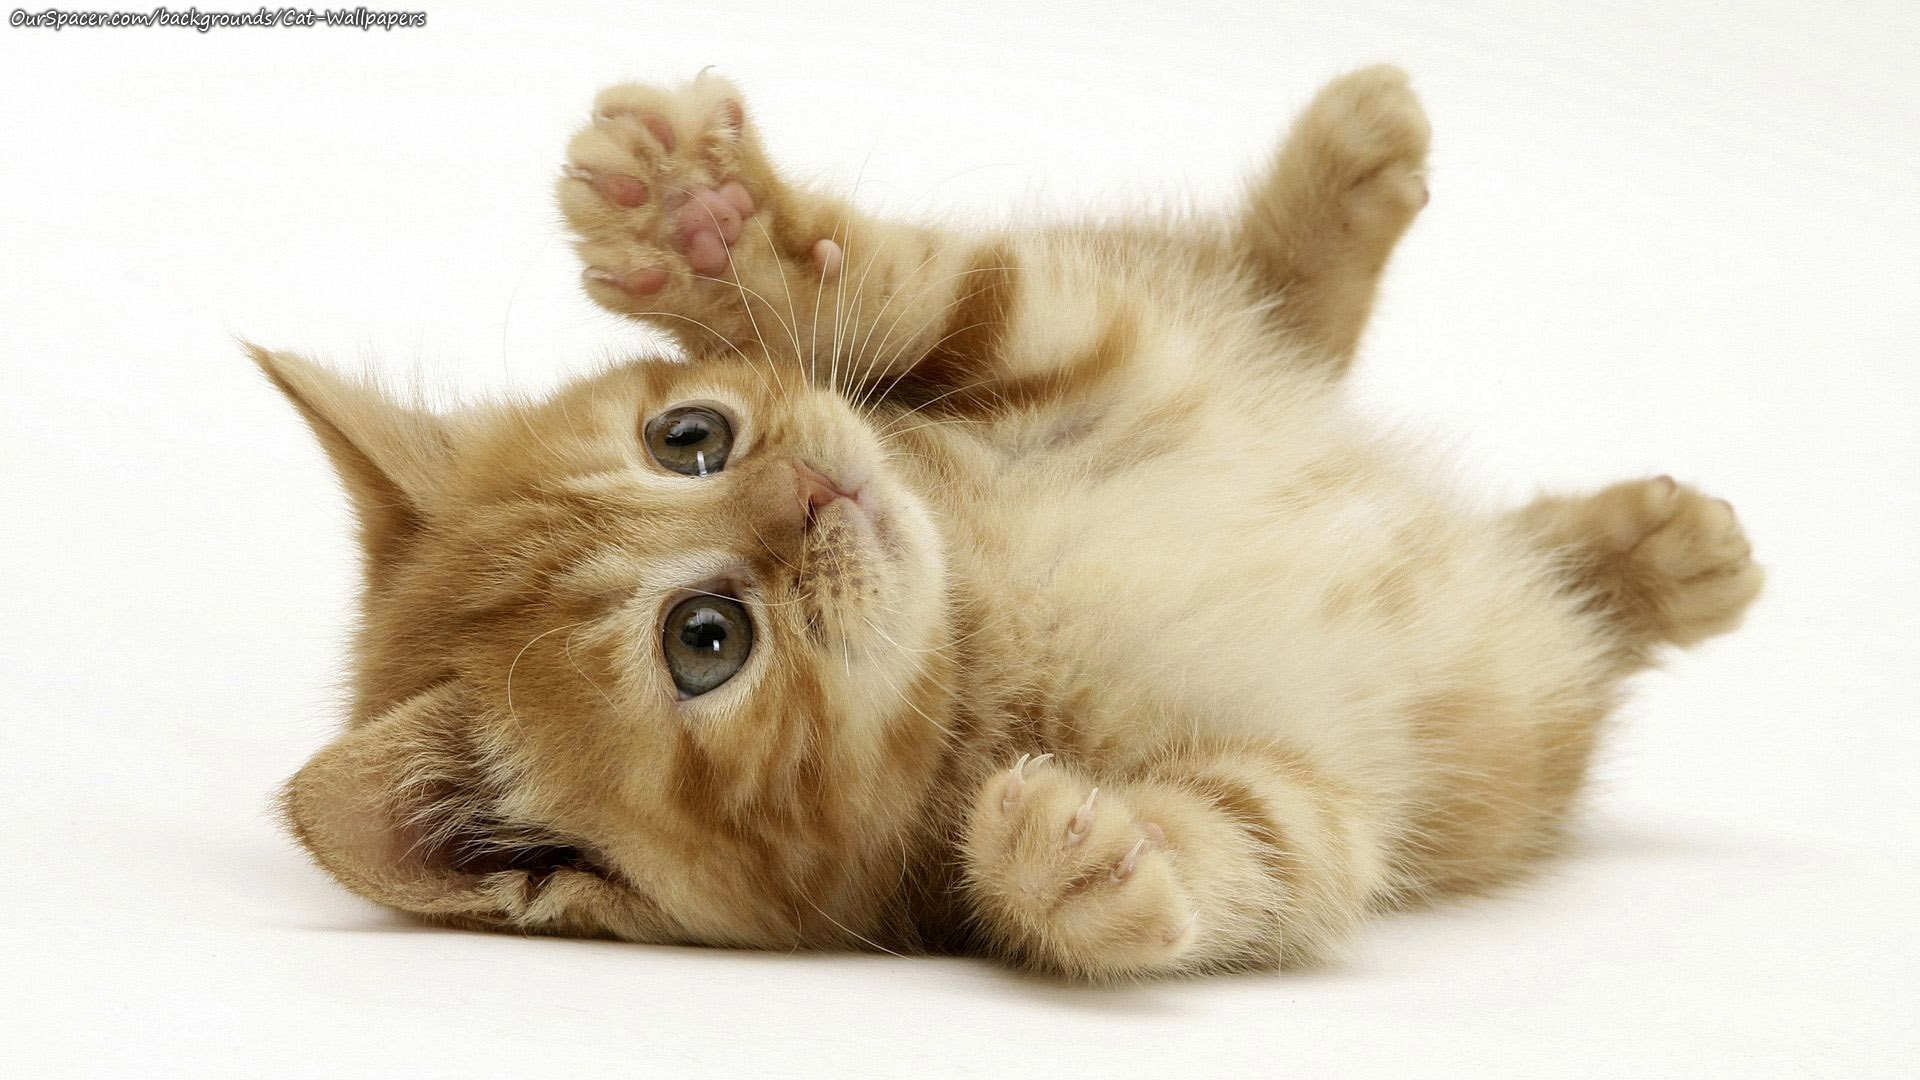 Cutie kitten looks like a little baby waiting to be carried wallpapers for myspace, twitter, and hi5 backgrounds